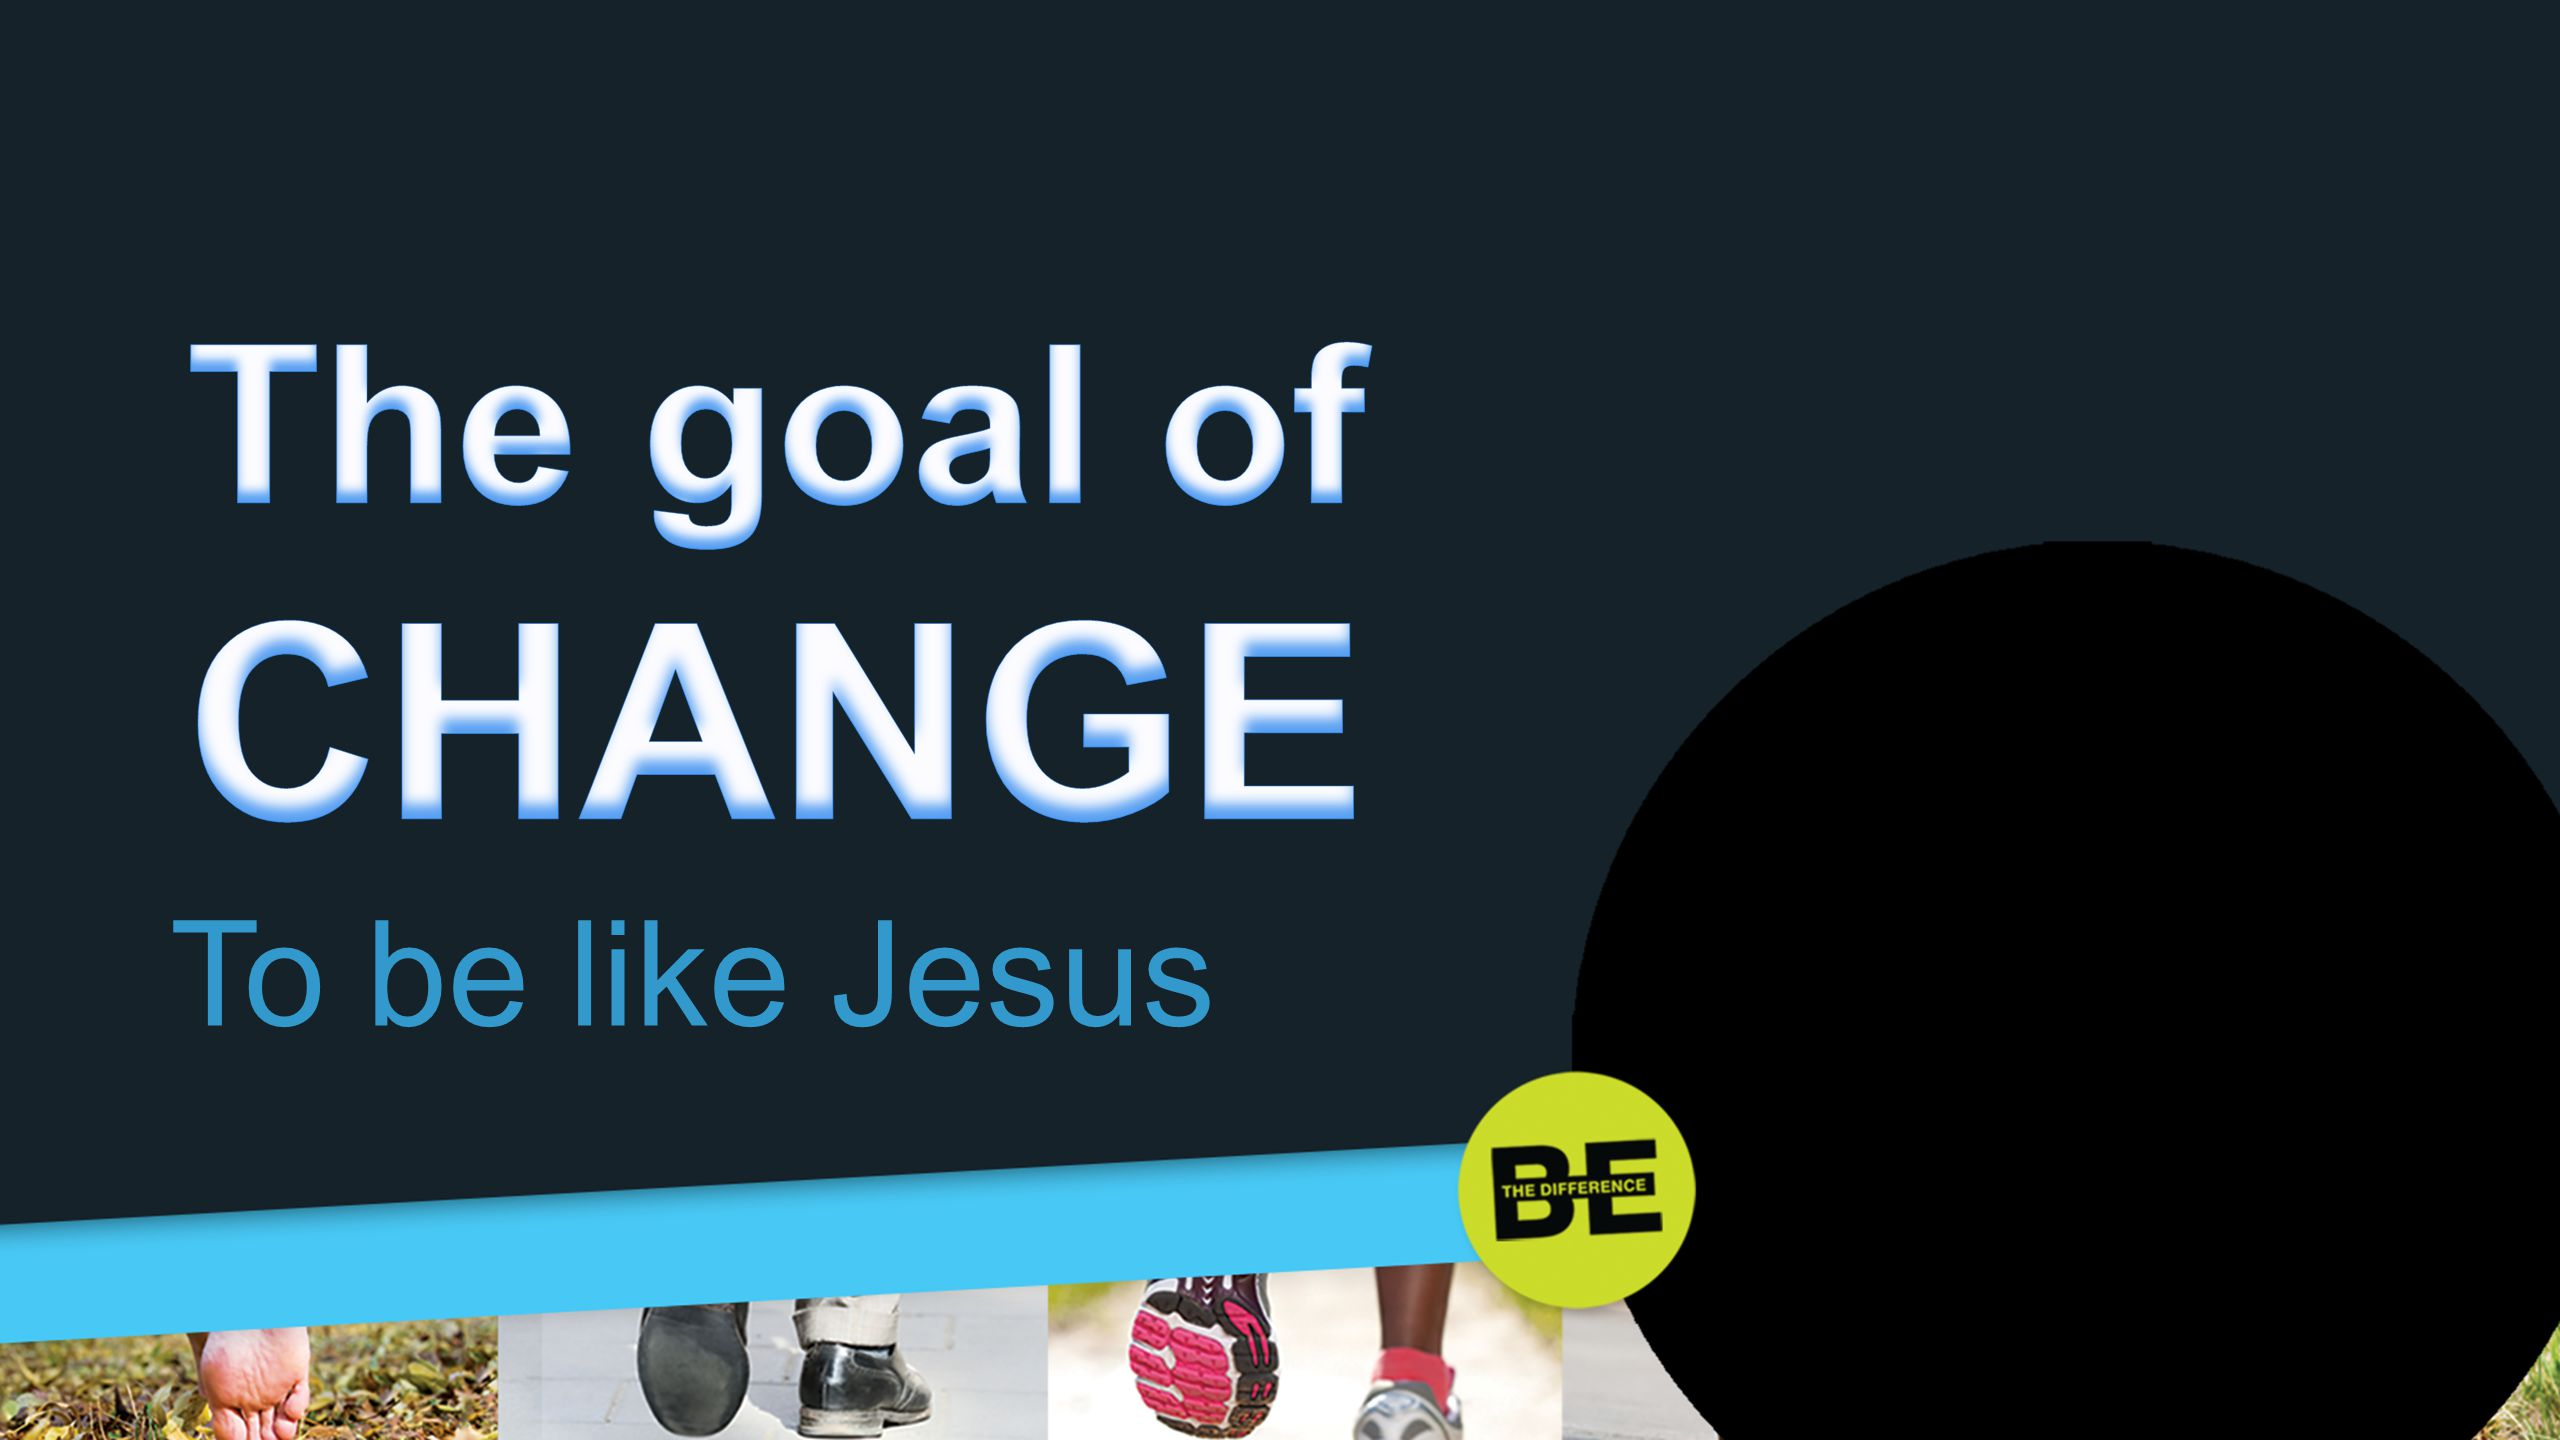 The goal of CHANGE To be like Jesus 3. The goal of change